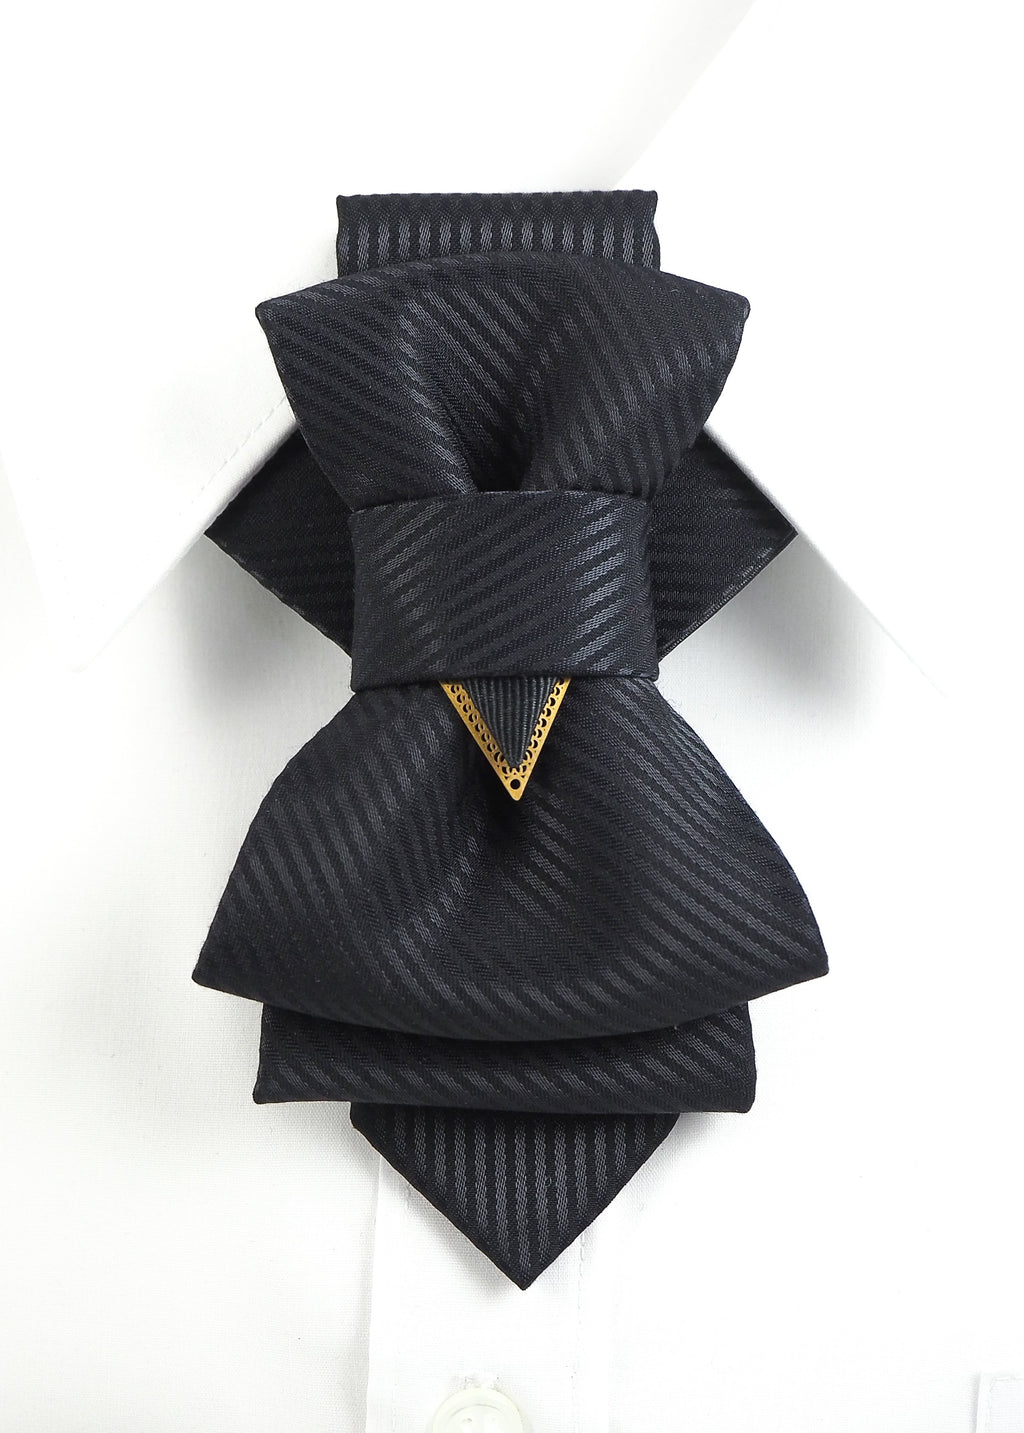 Bow Tie, Tie for wedding suite BLACK LINE hopper tie Bow tie